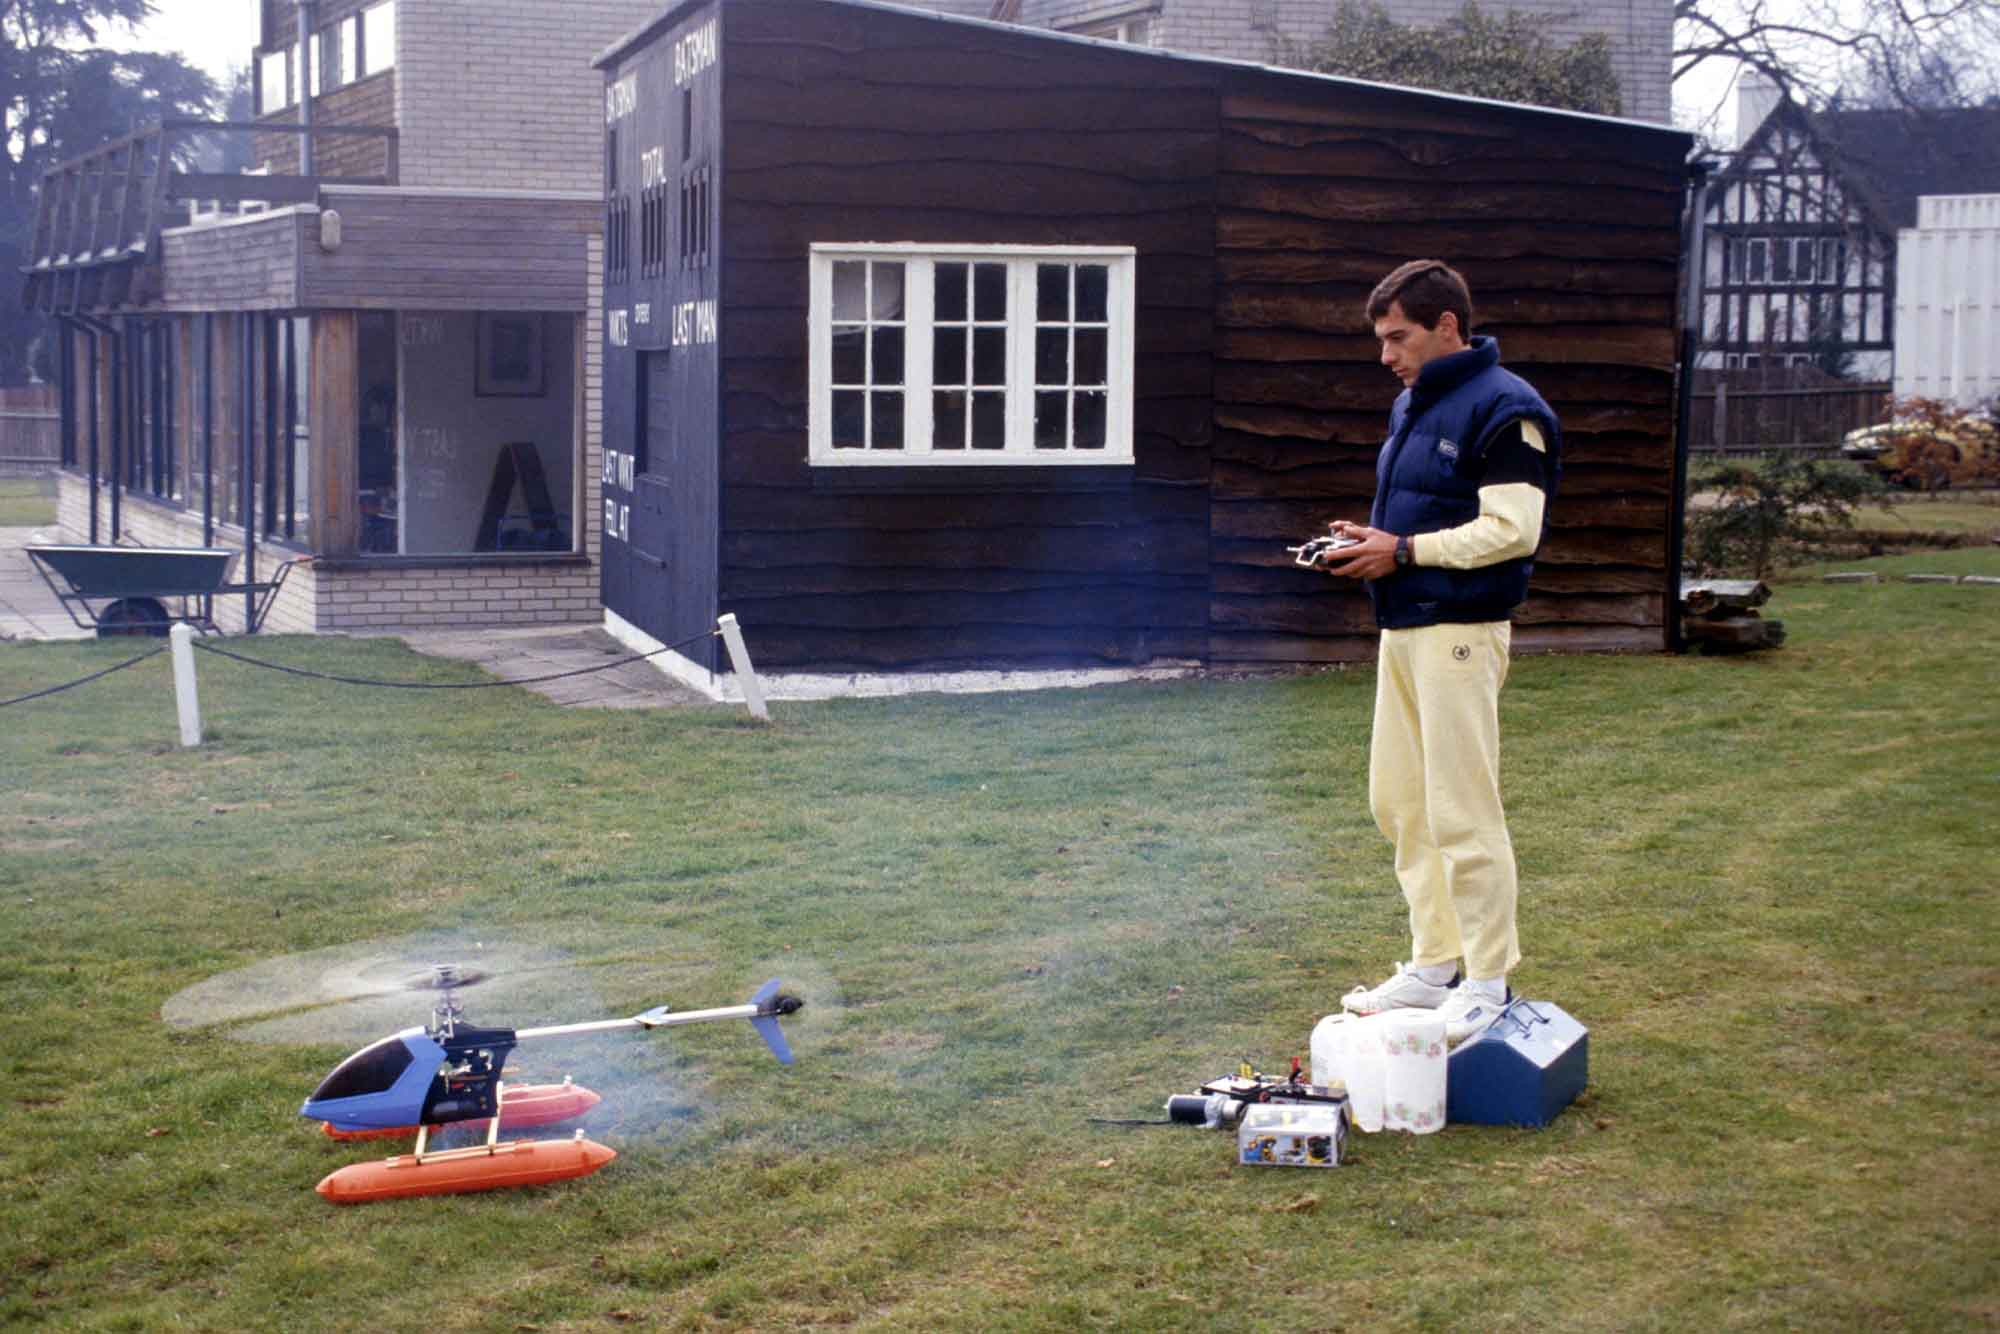 Ayrton Senna flies his model helicopter at home in Esher Surrey